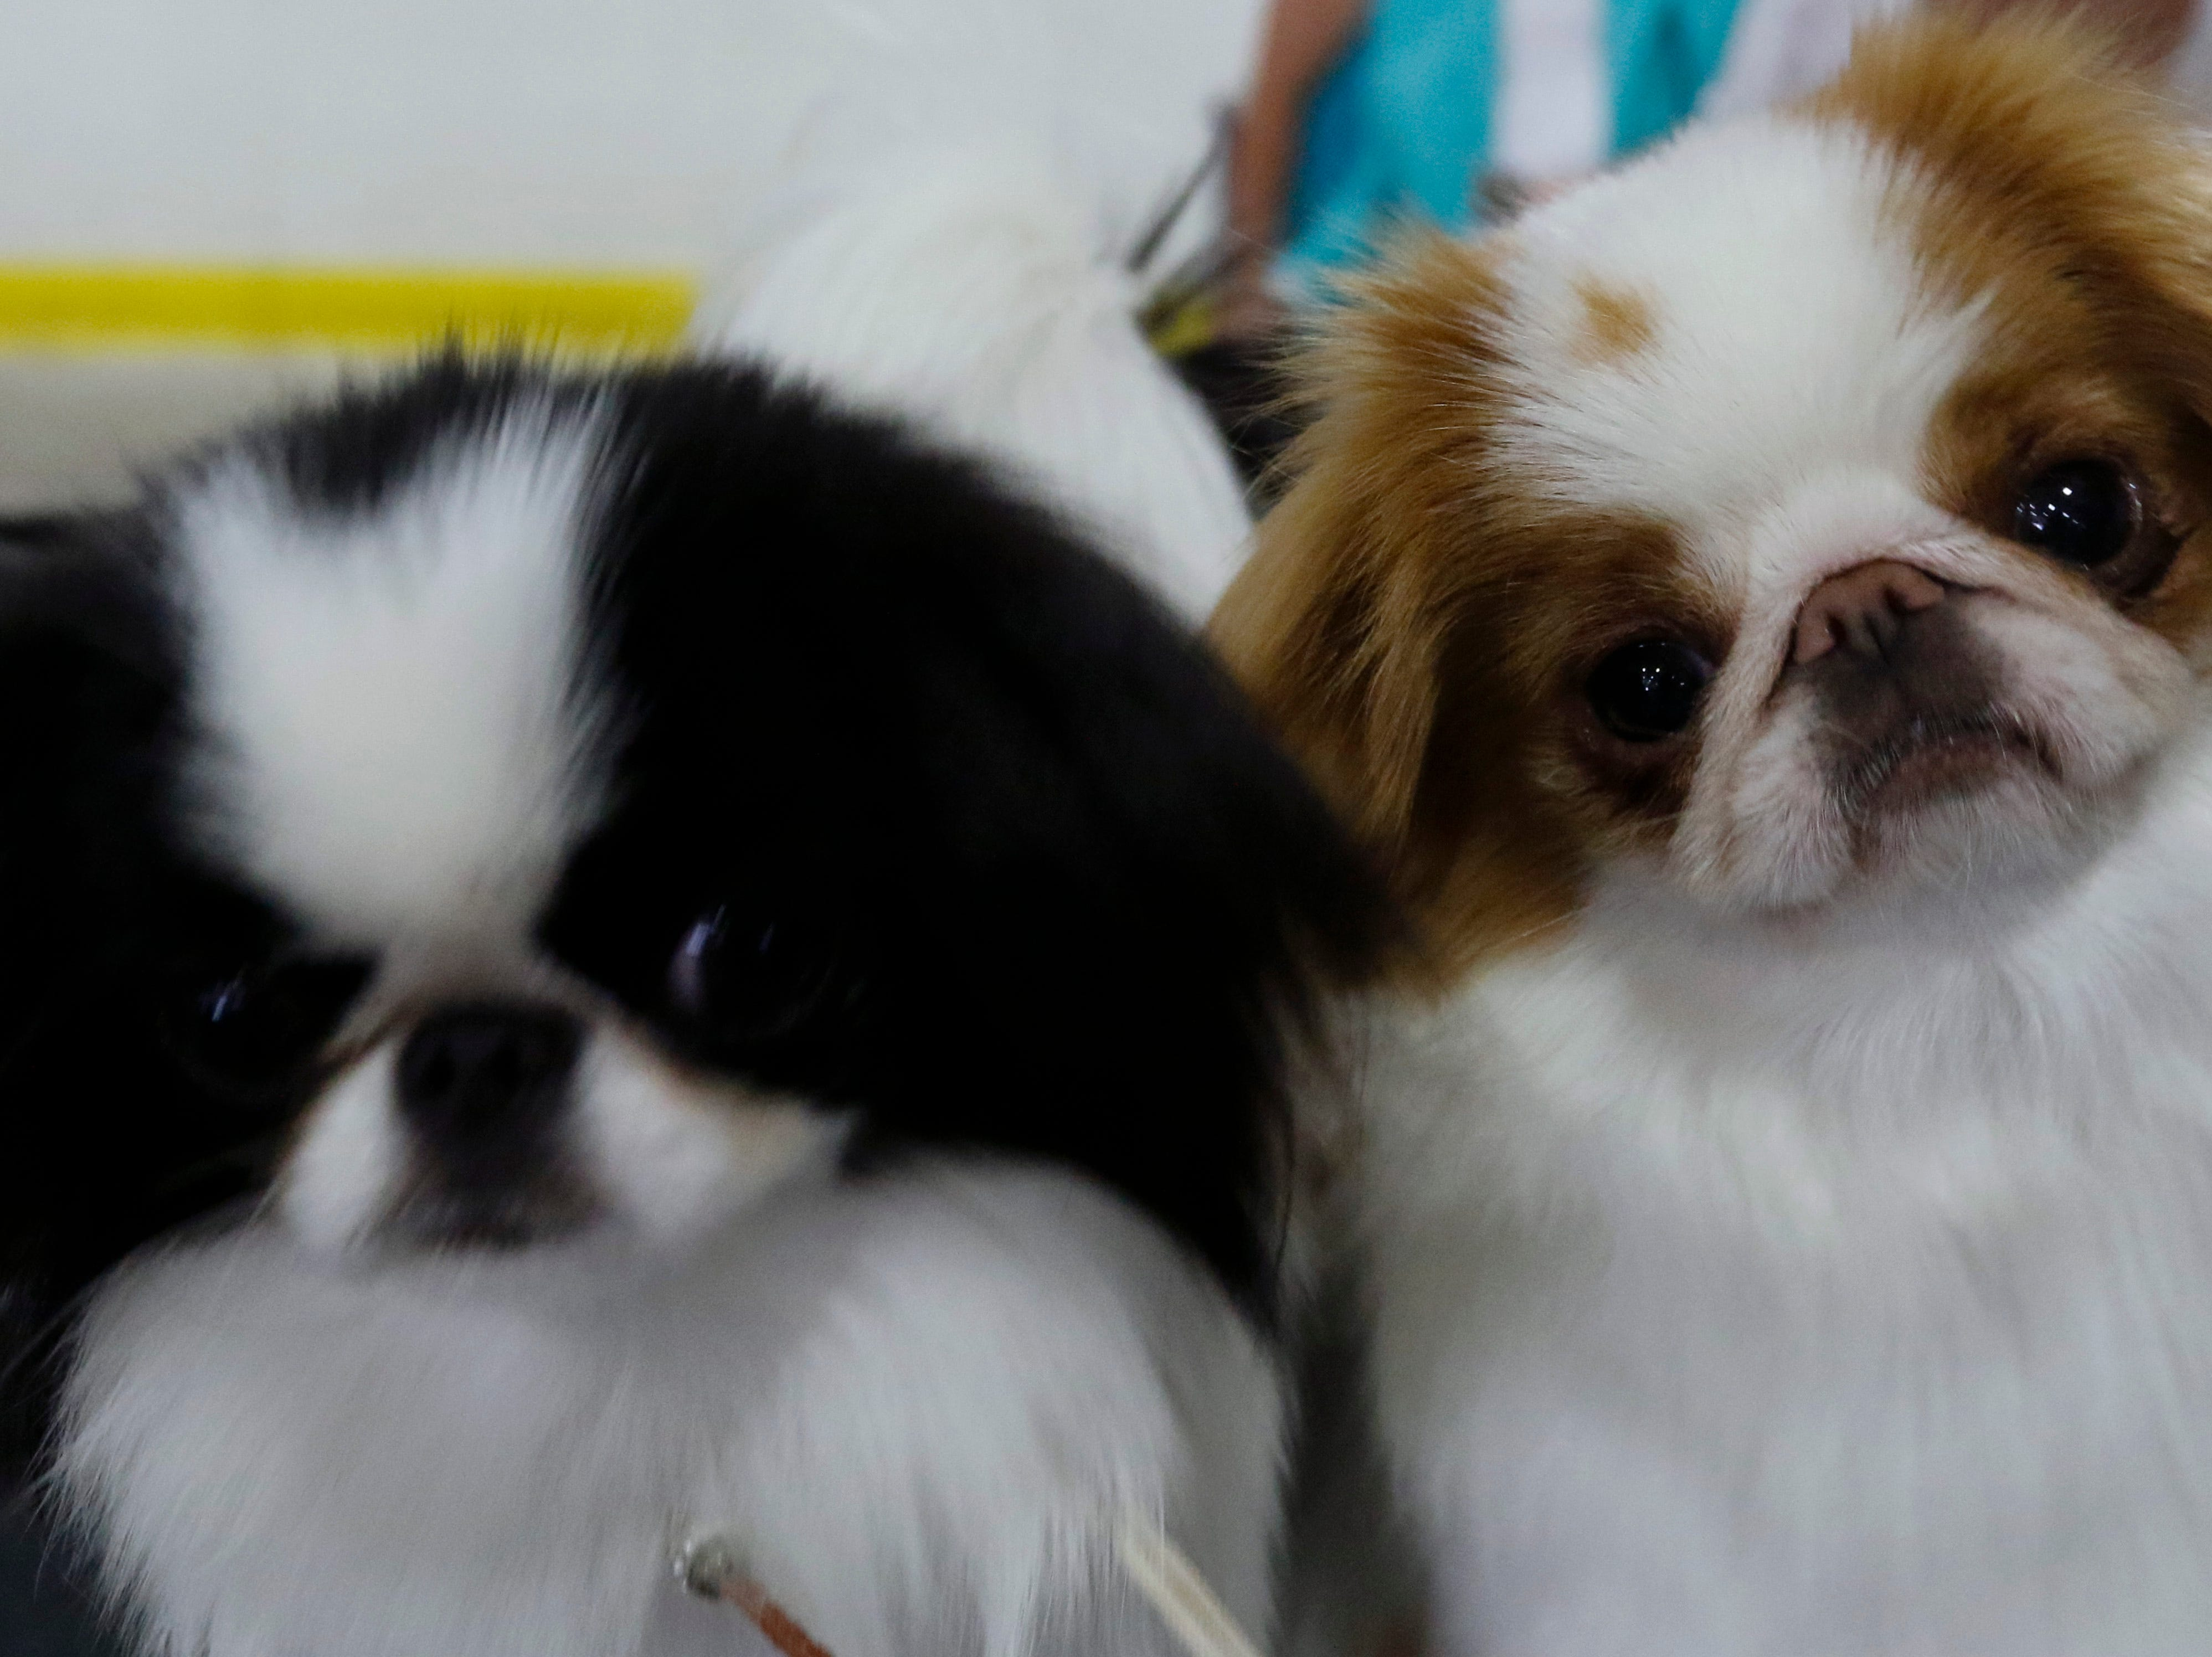 Emmie, left, and her fellow Japanese chin Coco wait to compete during the Marshfield Area Kennel Club's All-Breed Dog Show, Obedience Trials and Rally Trials at the Central Wisconsin Fairgrounds in Marshfield Saturday, August 18, 2018.